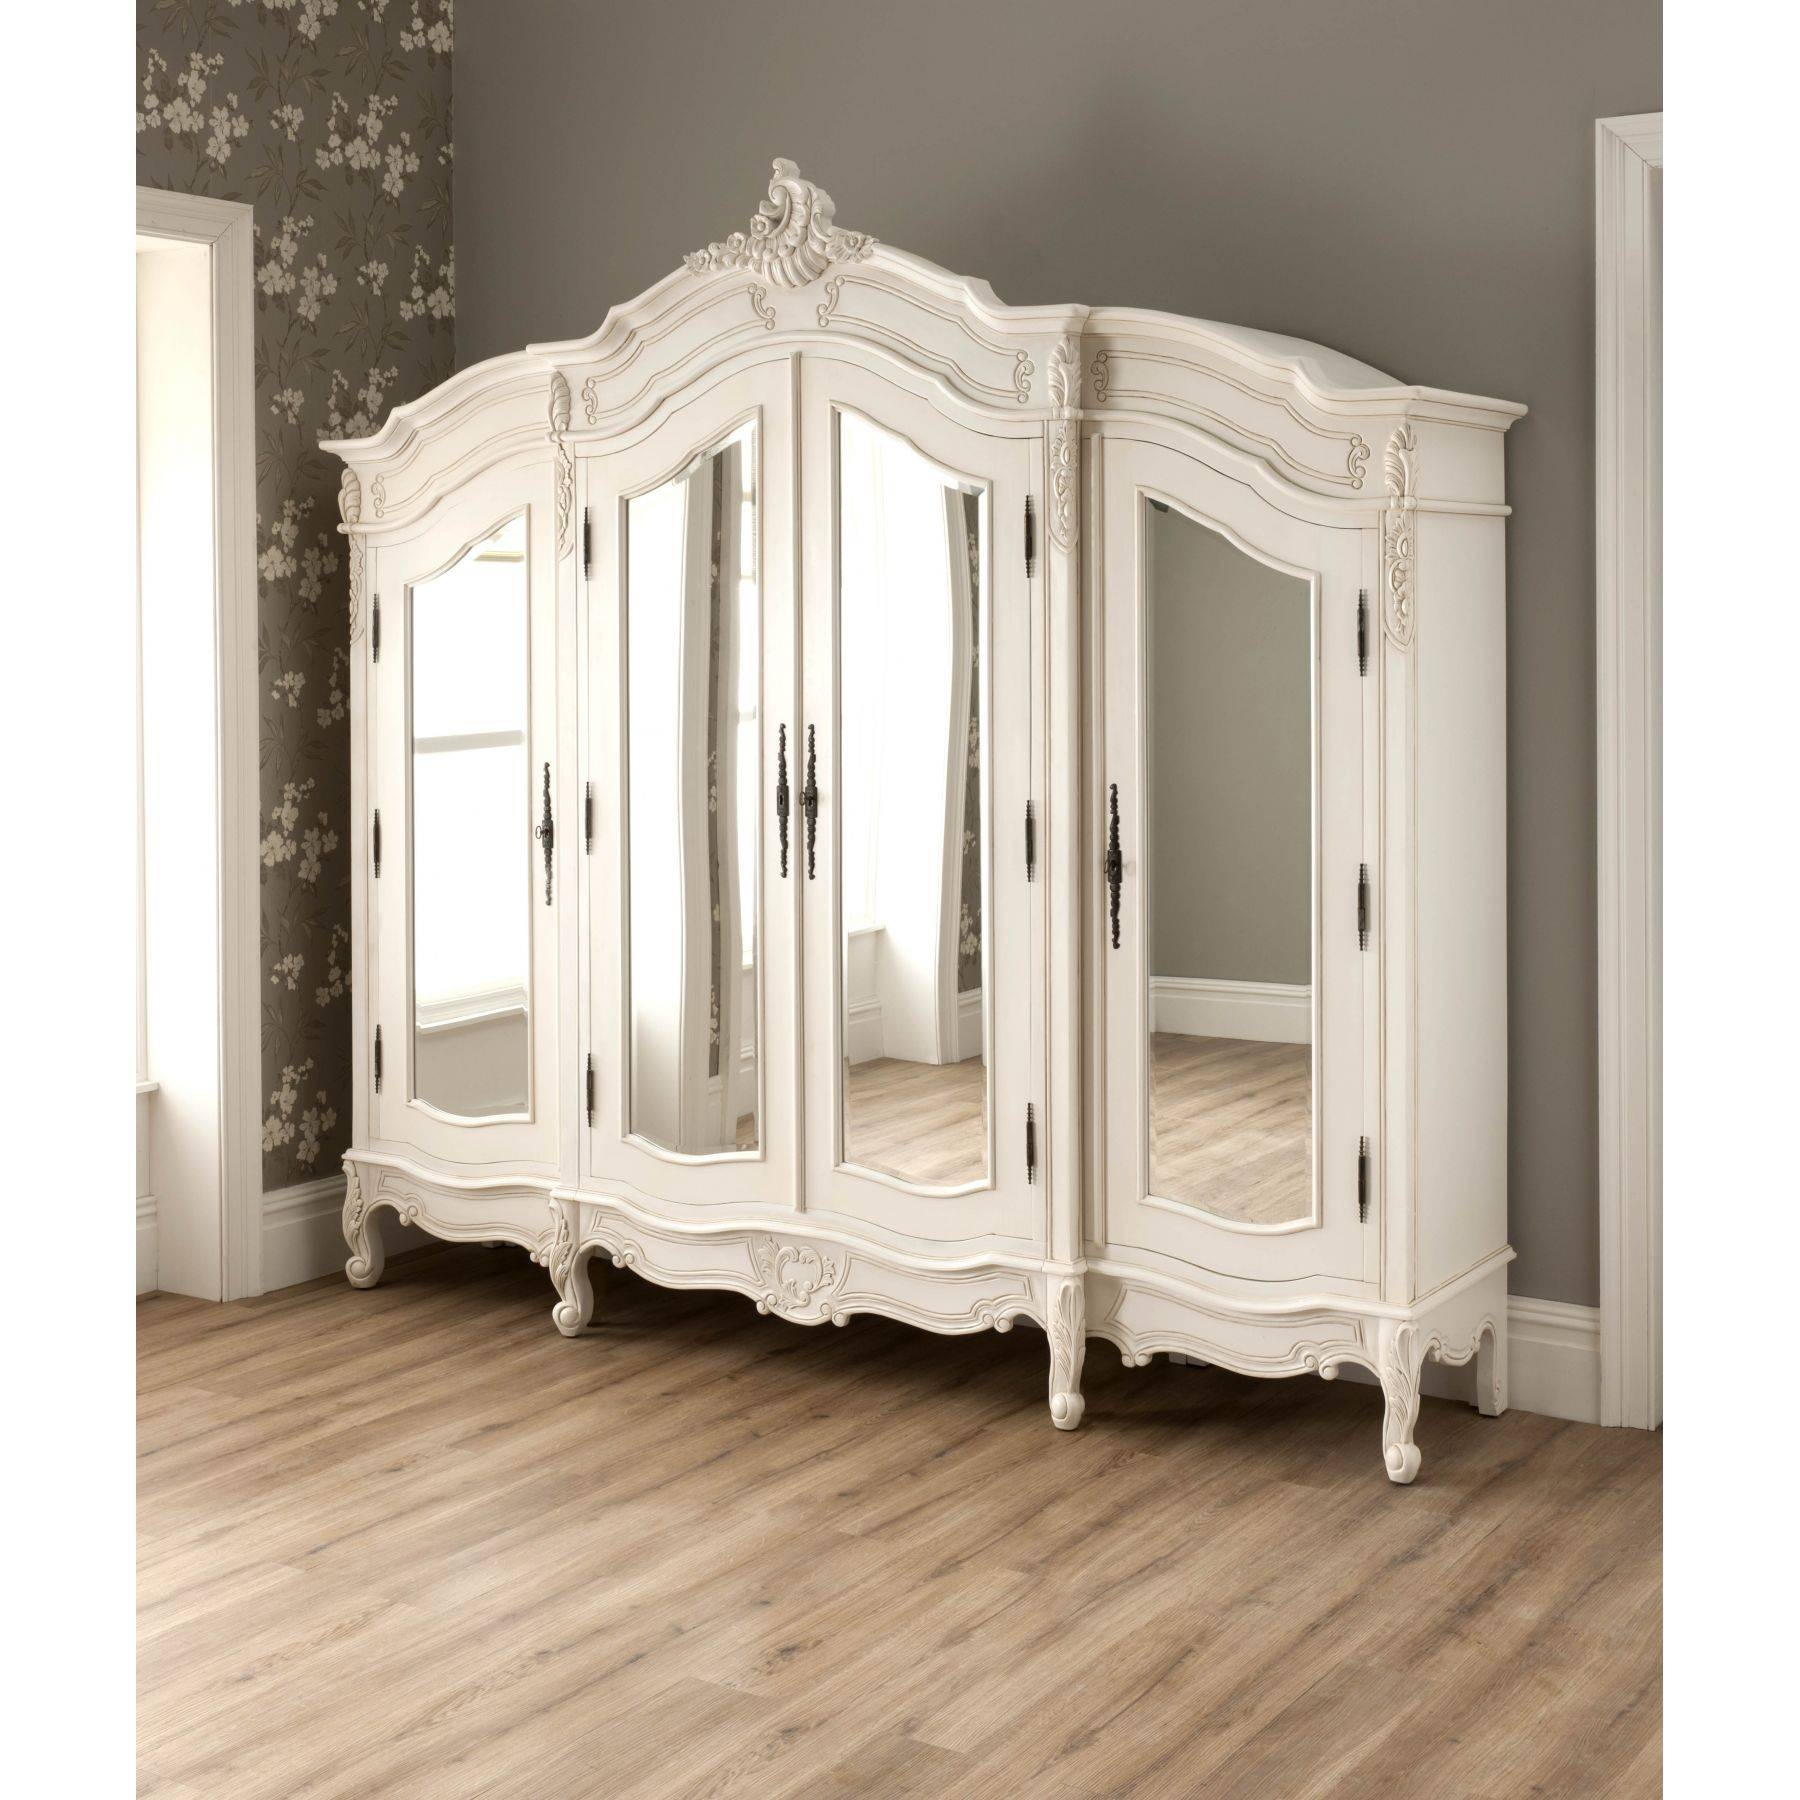 La Rochelle Antique French Wardrobe | Rococo Furniture | French with regard to Antique French Wardrobes (Image 12 of 15)